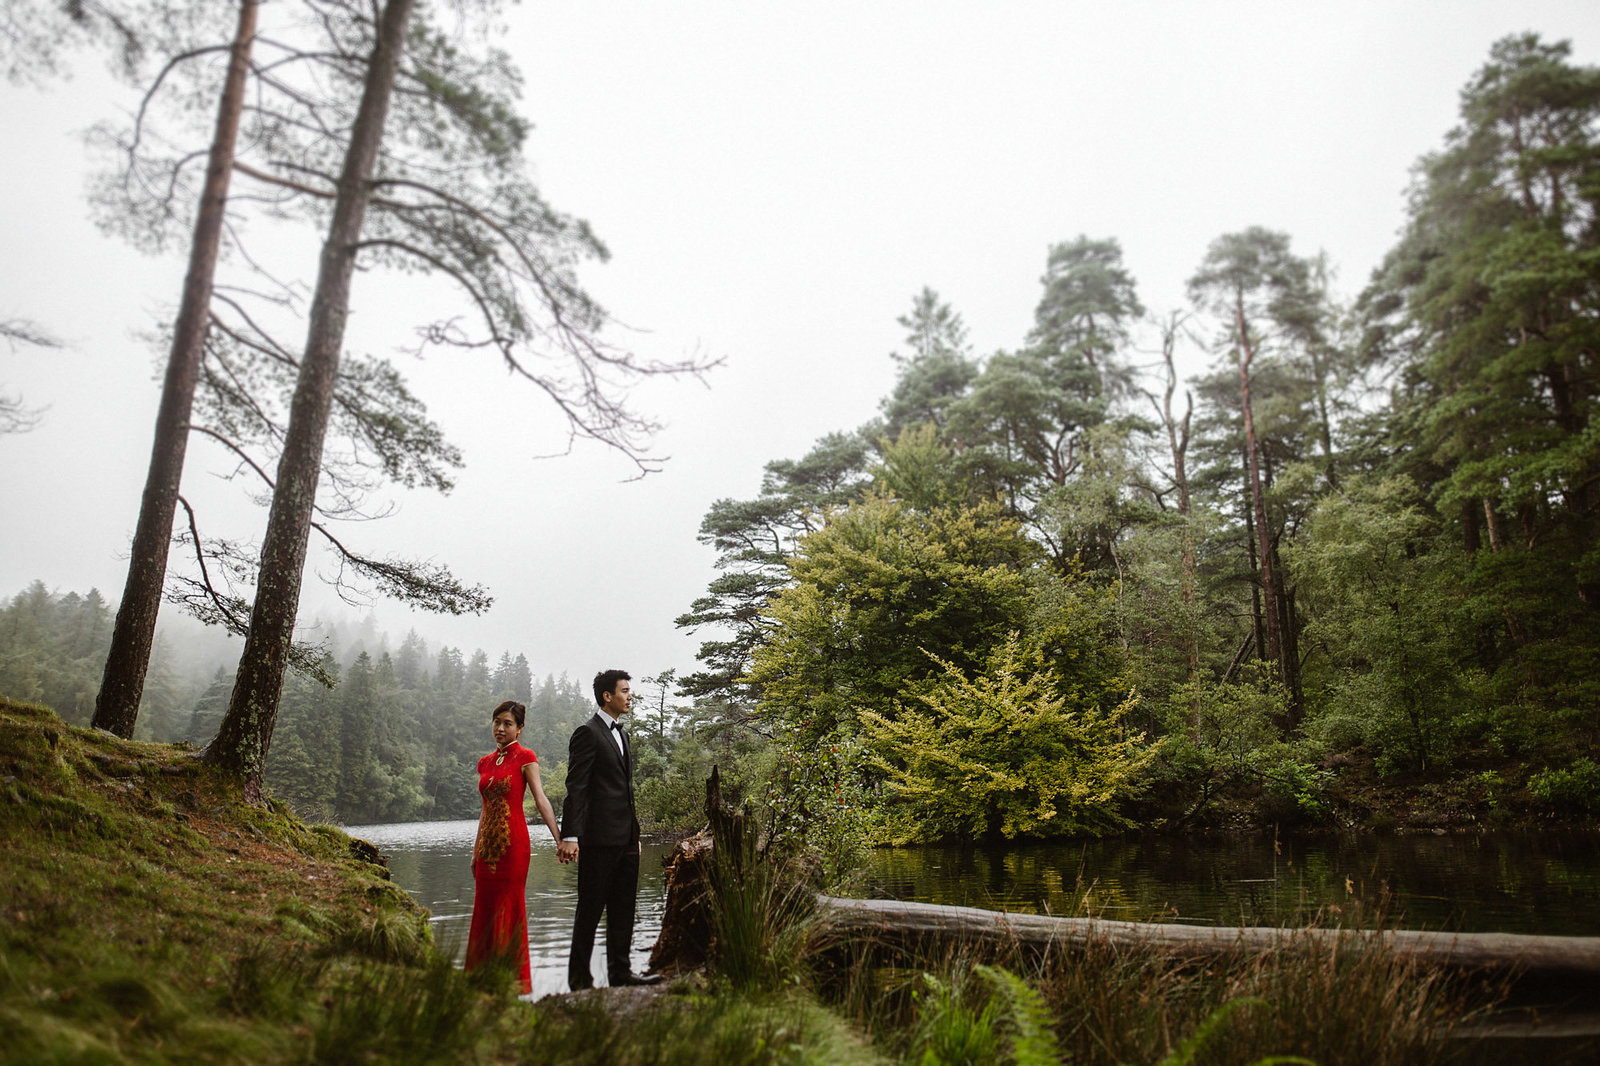 UK Wedding Photographer & Videographer - Jono Symonds (3)